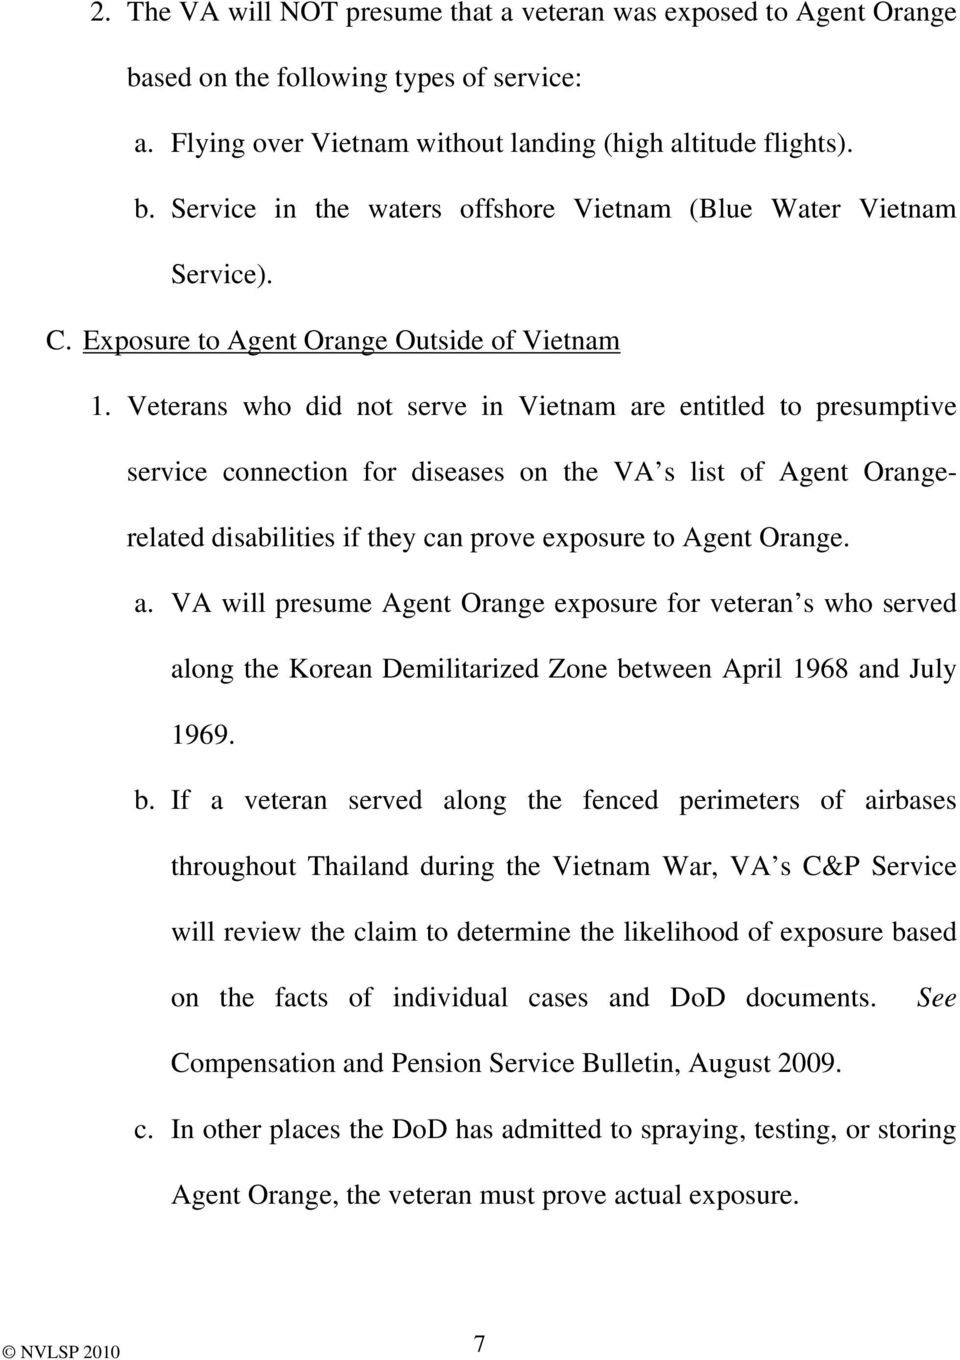 Veterans who did not serve in Vietnam are entitled to presumptive service connection for diseases on the VA s list of Agent Orangerelated disabilities if they can prove exposure to Agent Orange. a. VA will presume Agent Orange exposure for veteran s who served along the Korean Demilitarized Zone between April 1968 and July 1969.